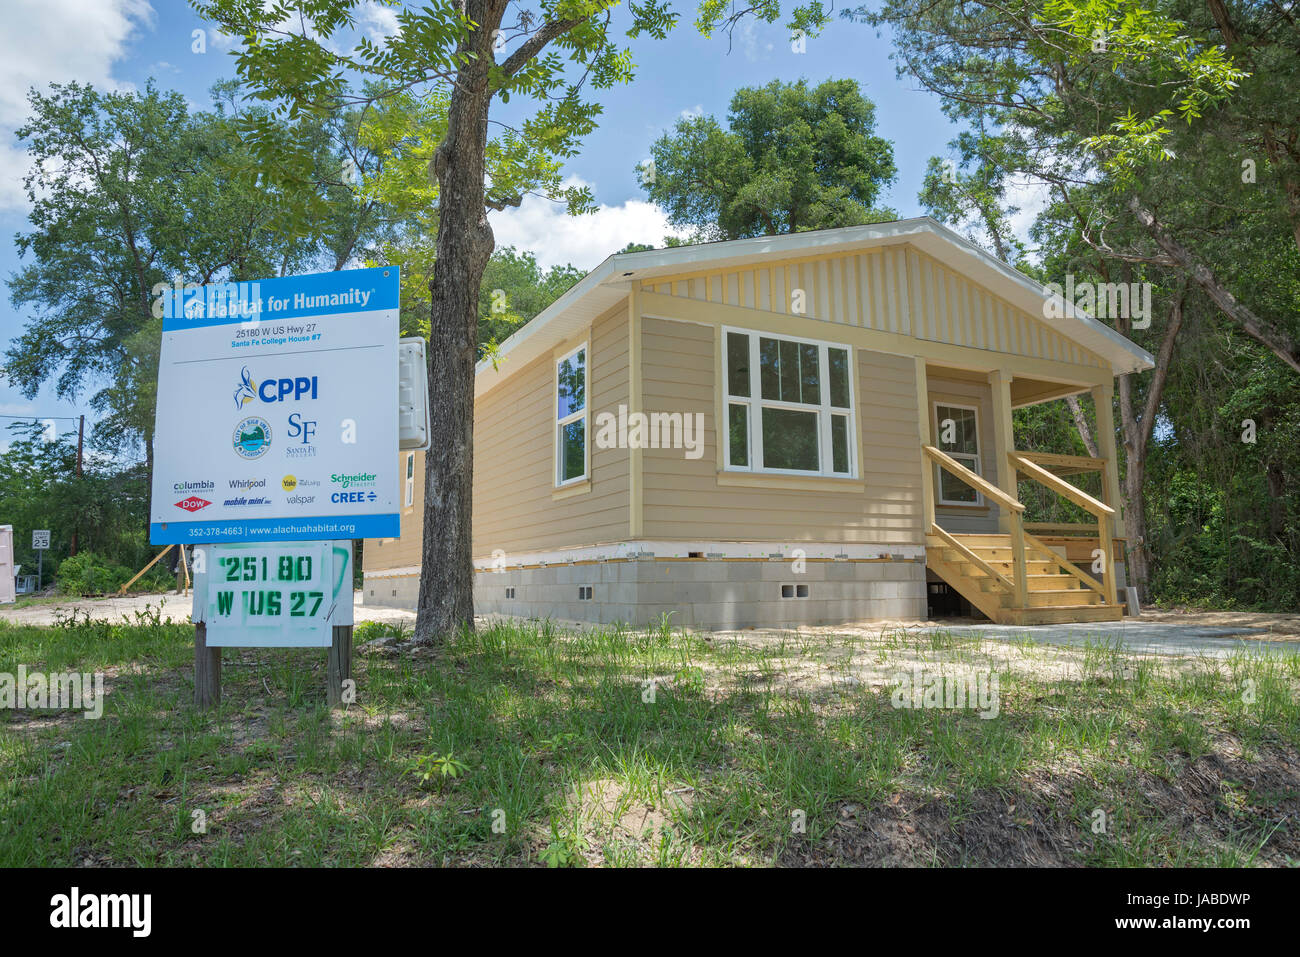 Habitat For Humanity home nearing completion in Alachua, Florida. - Stock Image